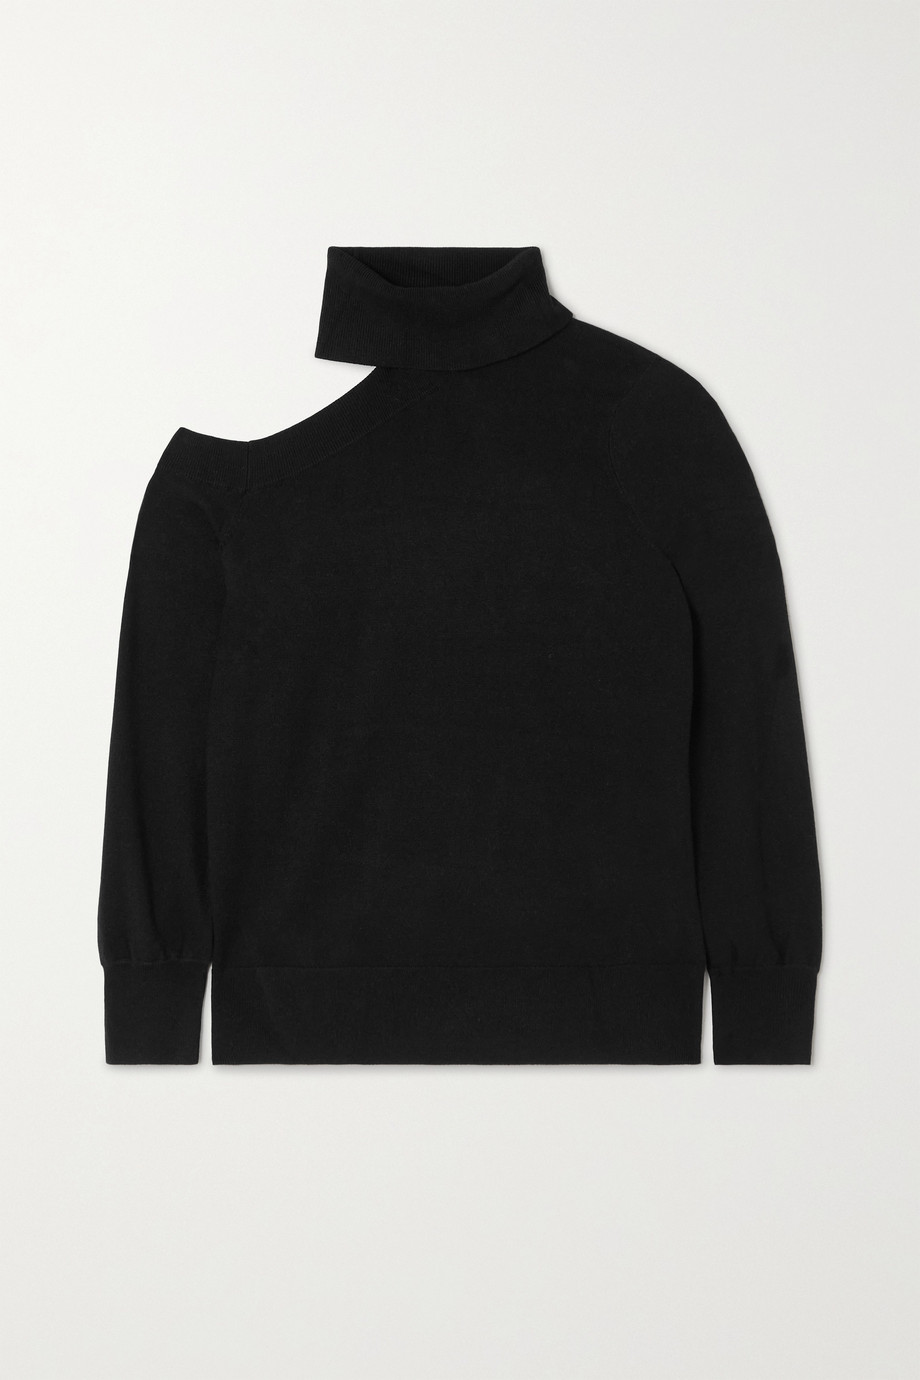 L'Agence Easton cutout knitted turtleneck sweater